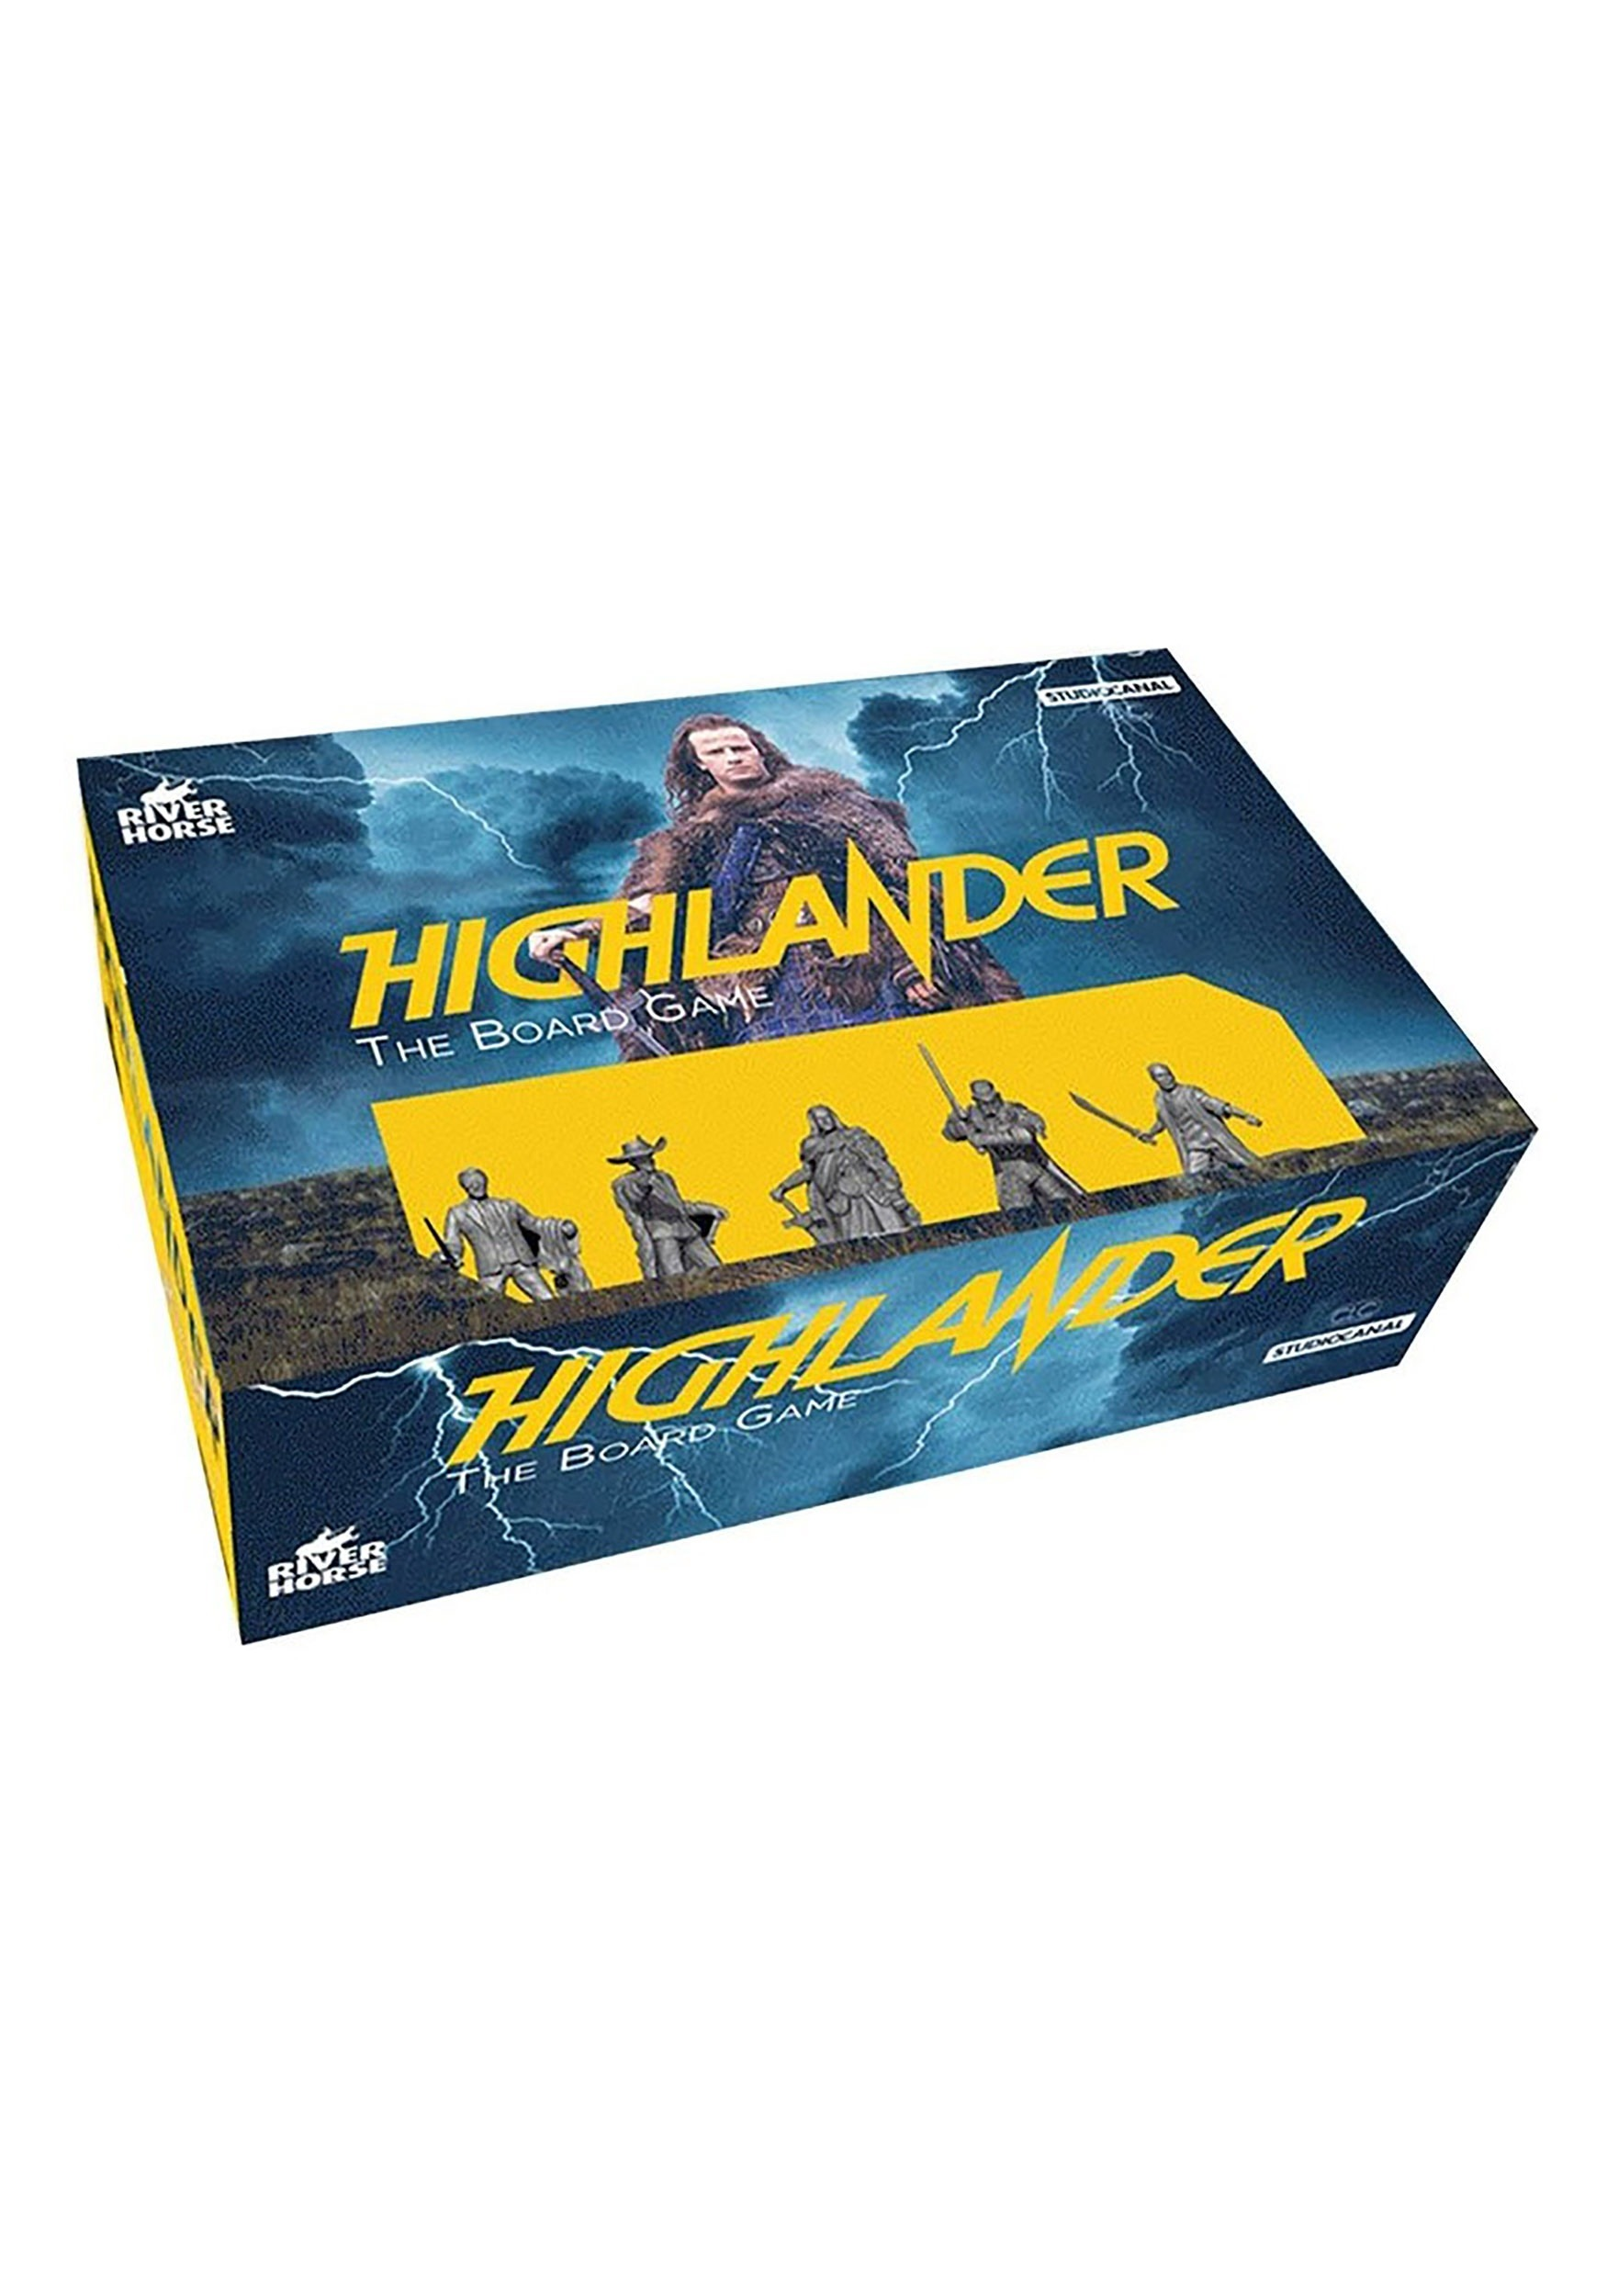 Highlander_The_Board_Game_by_River_Horse